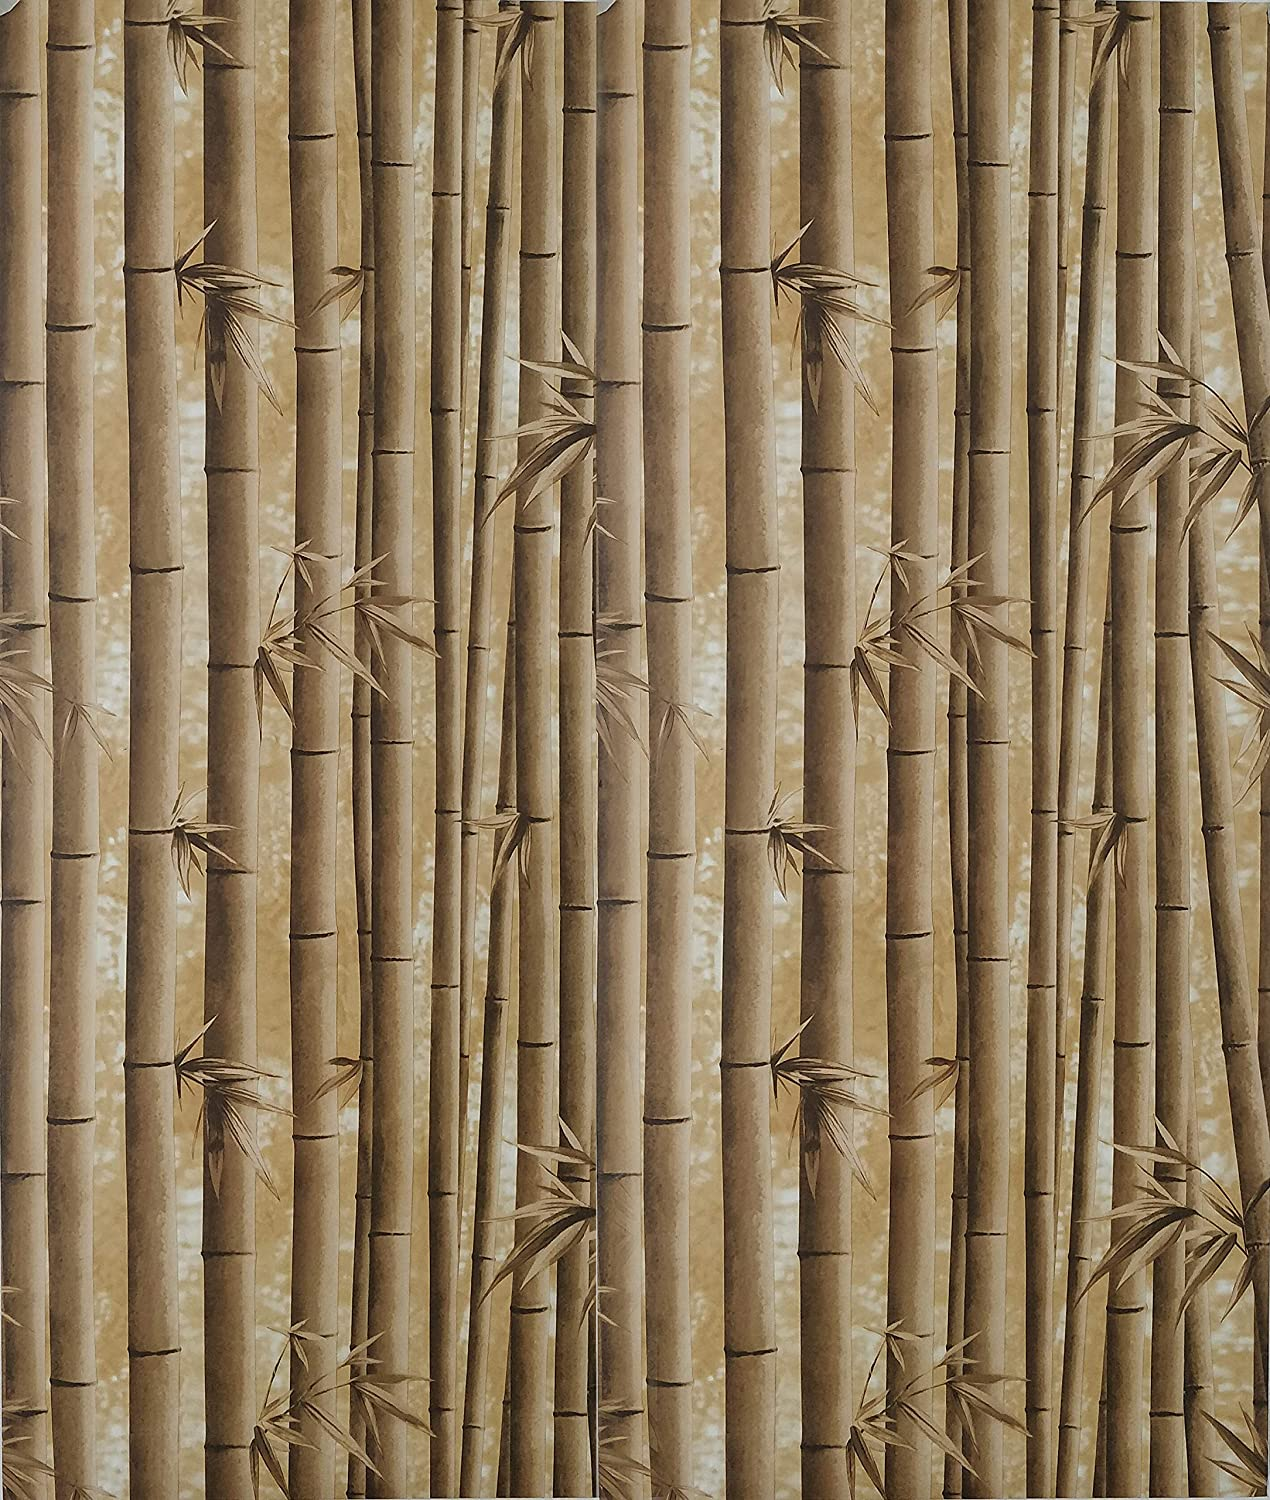 Dundee Deco AZ-F8263 Floral Printed Brown Bamboo Shoots Peel and Stick Self Adhesive Removable Wallpaper, Roll 18 ft. X 18 in. (5.5m X 45cm), 26.6 sq. ft. (2.5 sq. m)